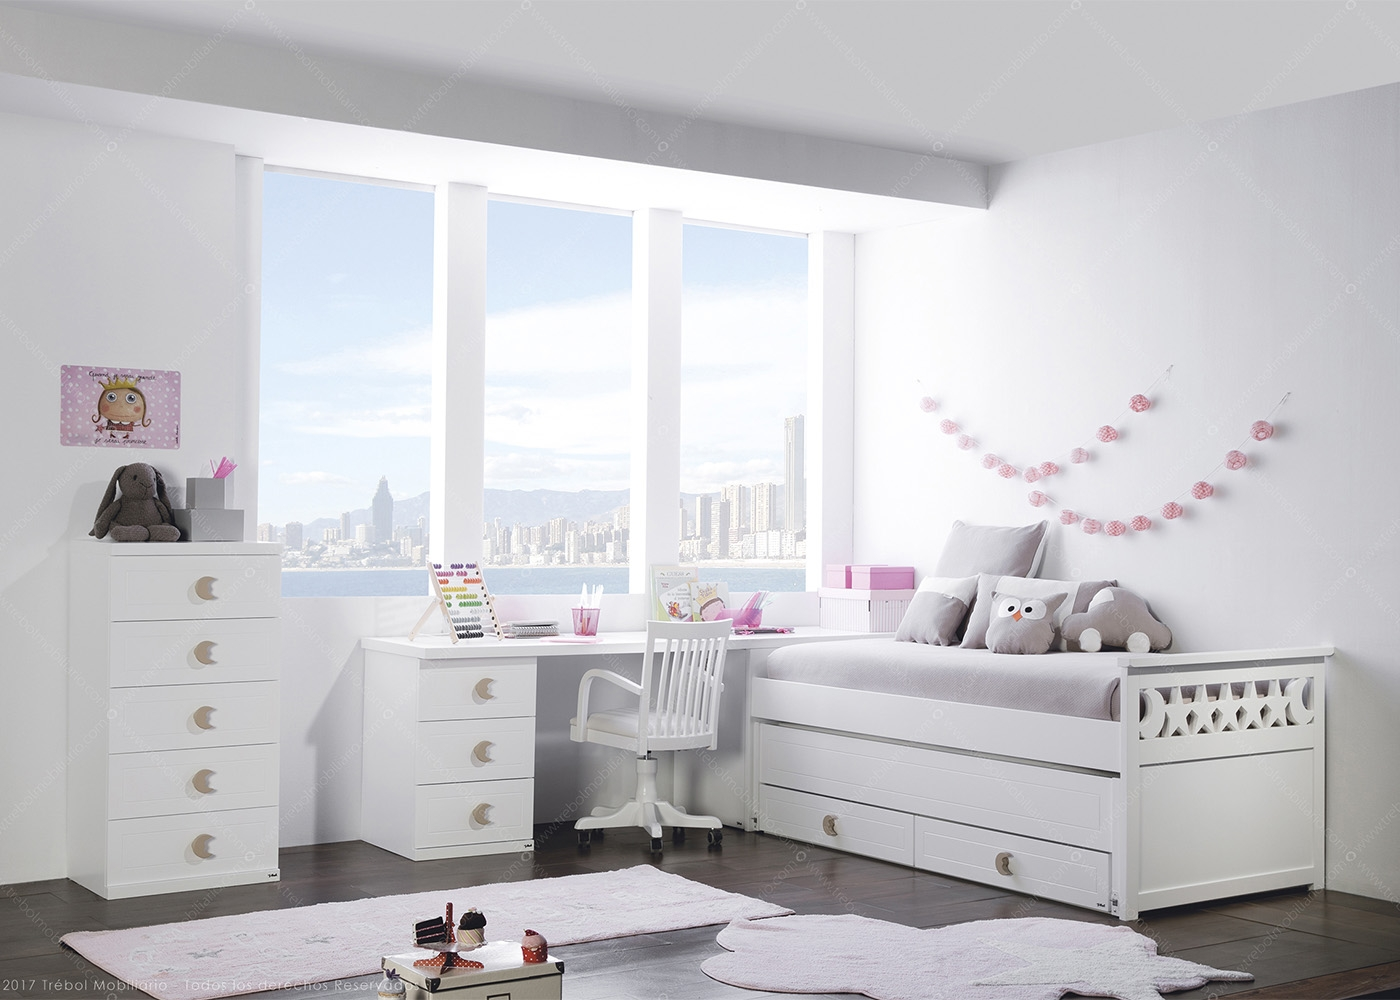 chambre junior design de haute qualit trebol chez ksl living. Black Bedroom Furniture Sets. Home Design Ideas